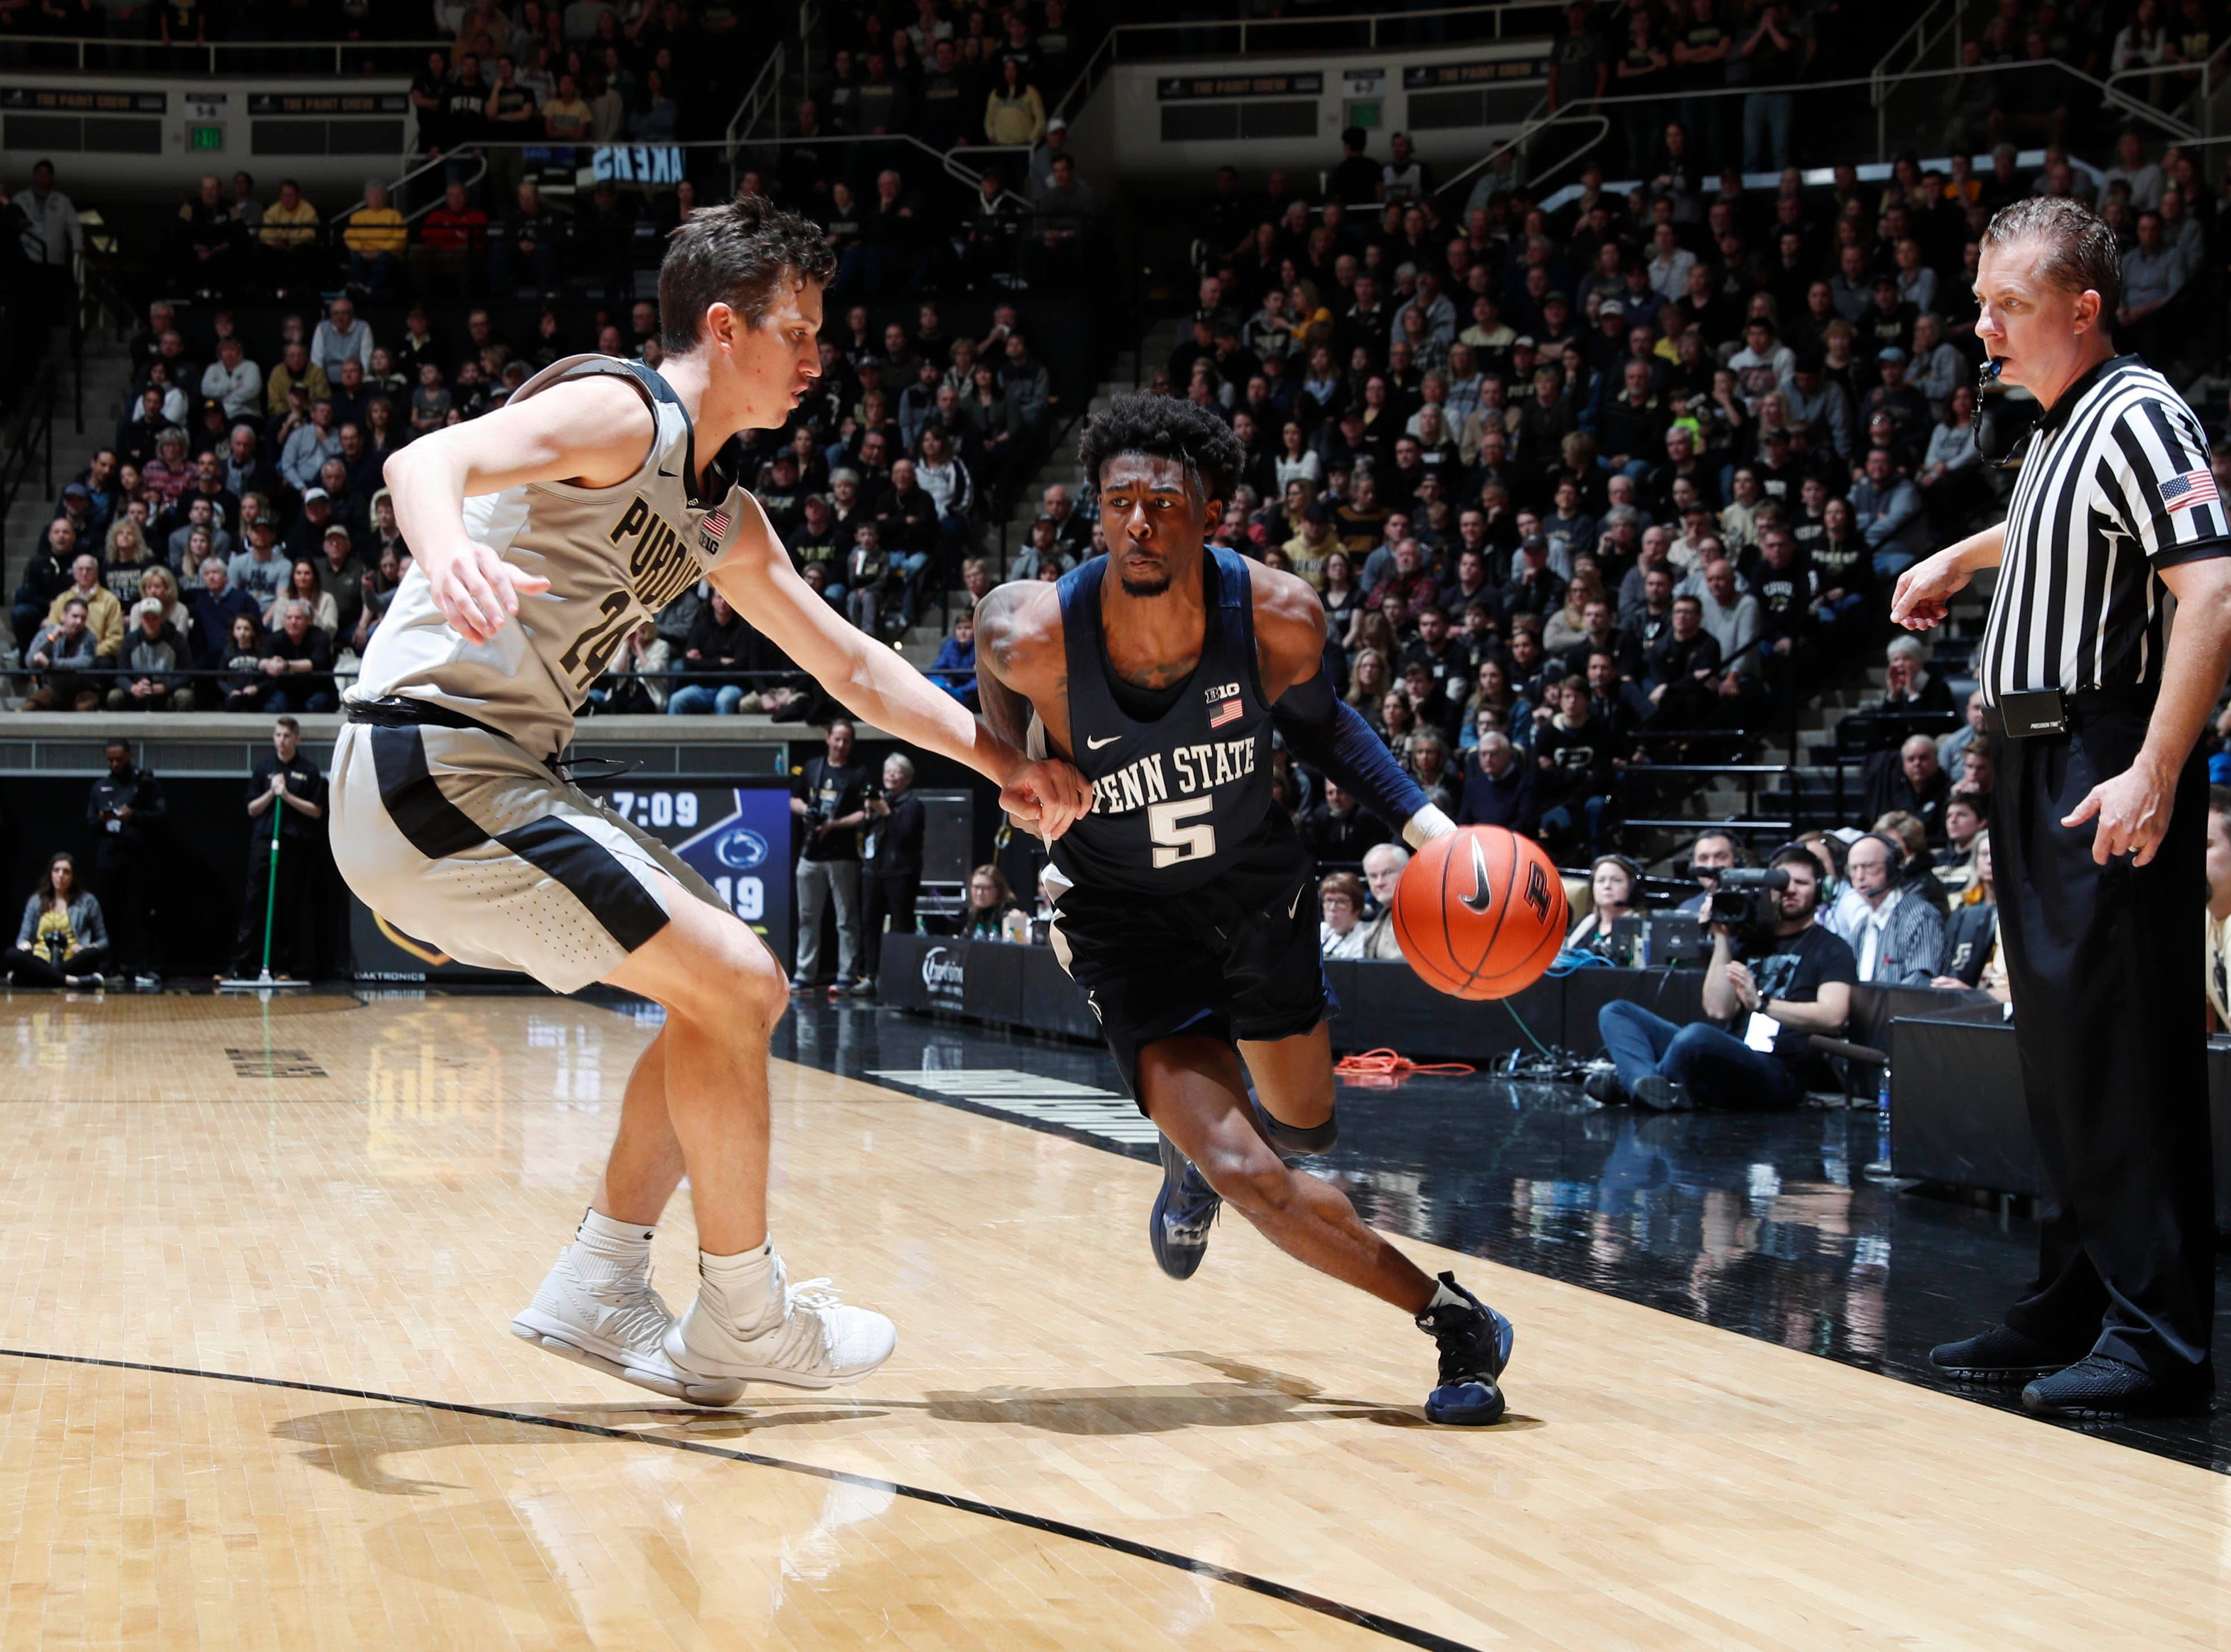 Feb 16, 2019; West Lafayette, IN, USA; Penn State Nittany Lions guard Jamari Wheeler (5) drives to the basket against Purdue Boilermakers forward Grady Eifert (24) during the first half at Mackey Arena. Mandatory Credit: Brian Spurlock-USA TODAY Sports